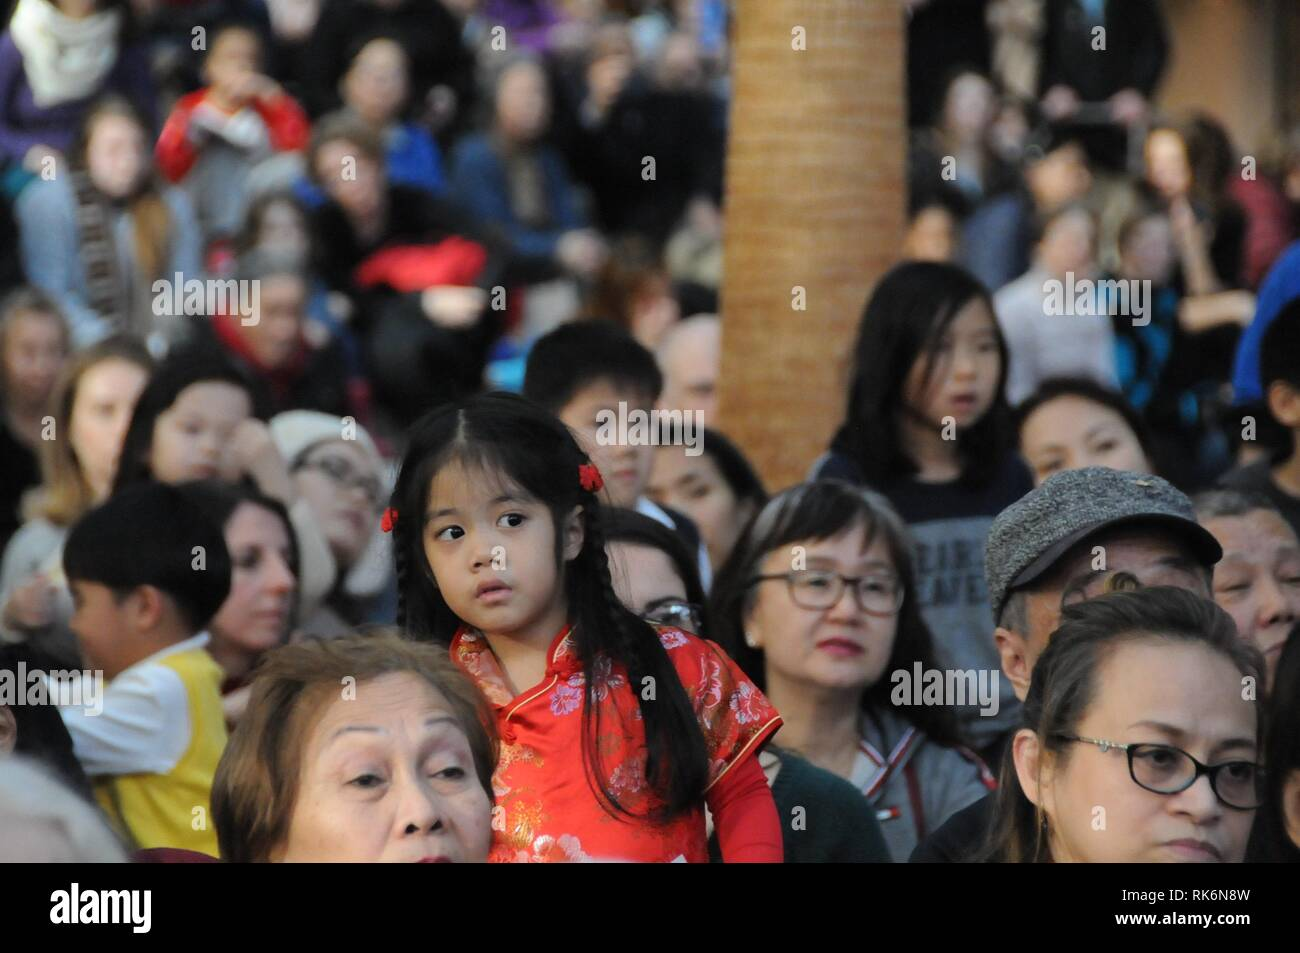 New York, USA. 10th Feb 2019.  People watch a performance celebrating Chinese New Year at Brookfield Place in Lower Manhattan of New York City, the United States, on Feb. 9, 2019. Around 2,000 people watched a performance celebrating Chinese New Year on Saturday at Brookfield Place, an indoor commercial area in Lower Manhattan of New York City.  e Credit: Xinhua/Alamy Live News Stock Photo